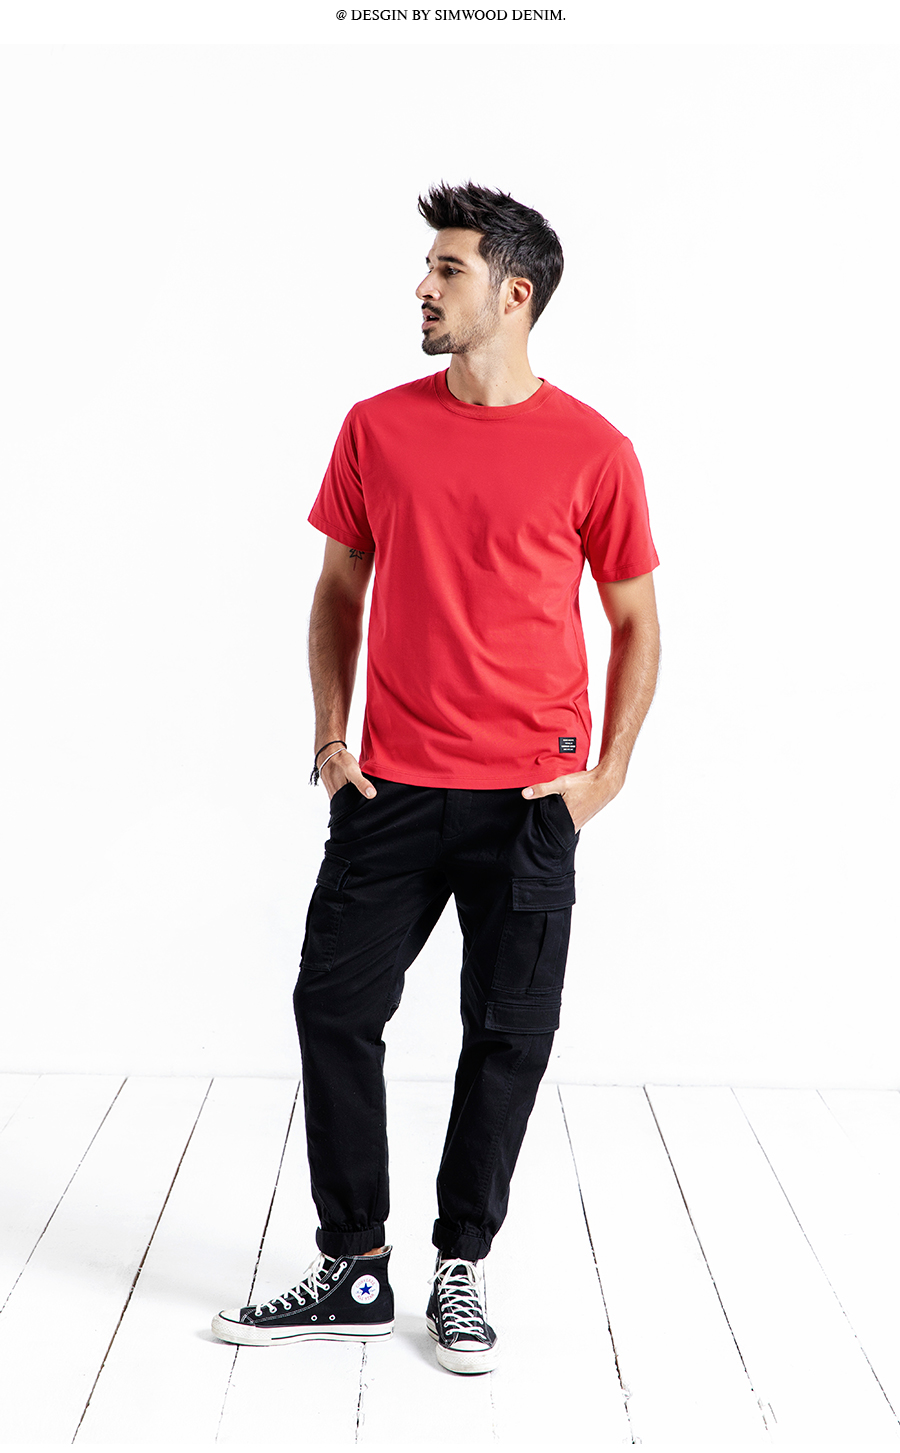 SIMWOOD 19 Summer New T-Shirt Men 100% Cotton Solid Color Casual t shirt Basics O-neck High Quality Plus Size Male Tee 190004 15